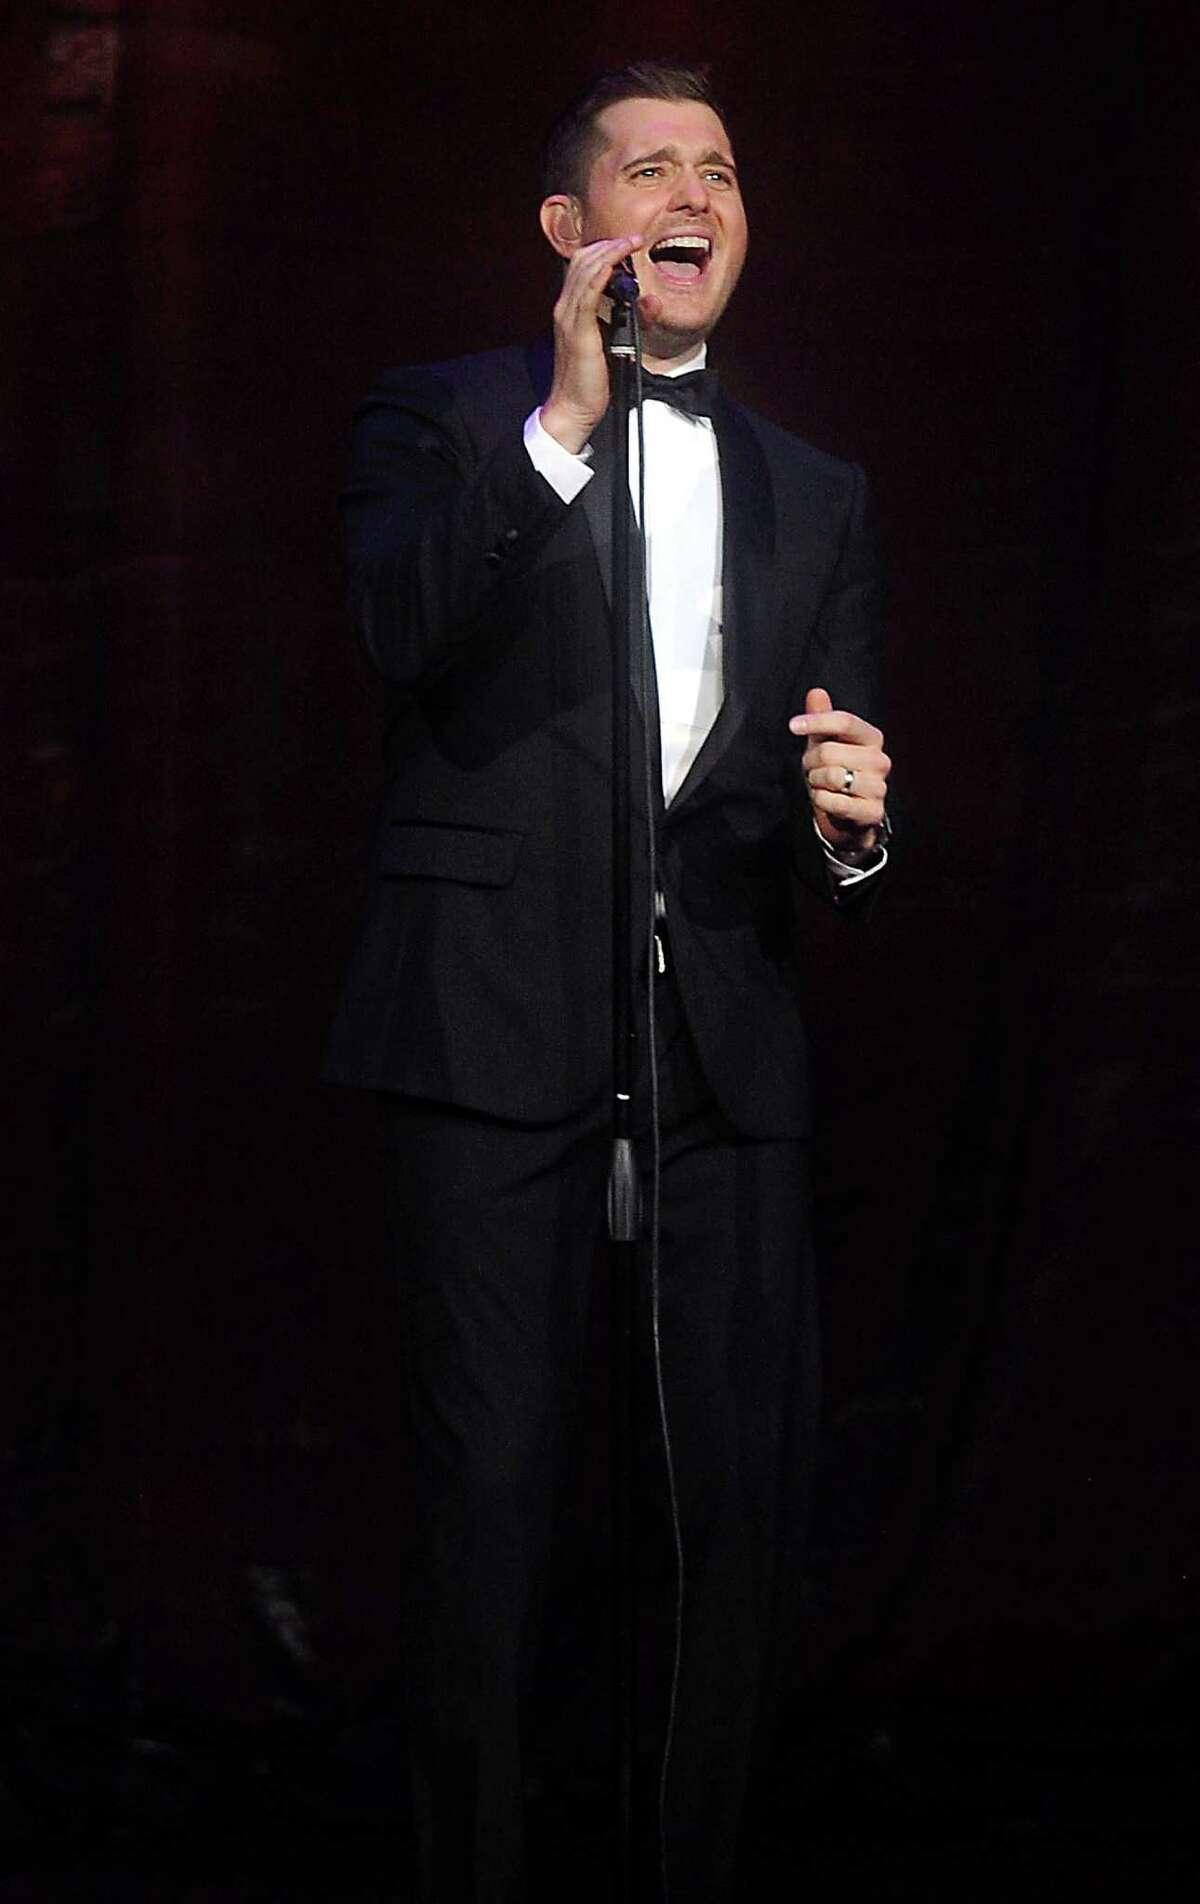 Michael Buble performs at the Toyota Center Sunday Oct. 20,2013. (Dave Rossman photo)